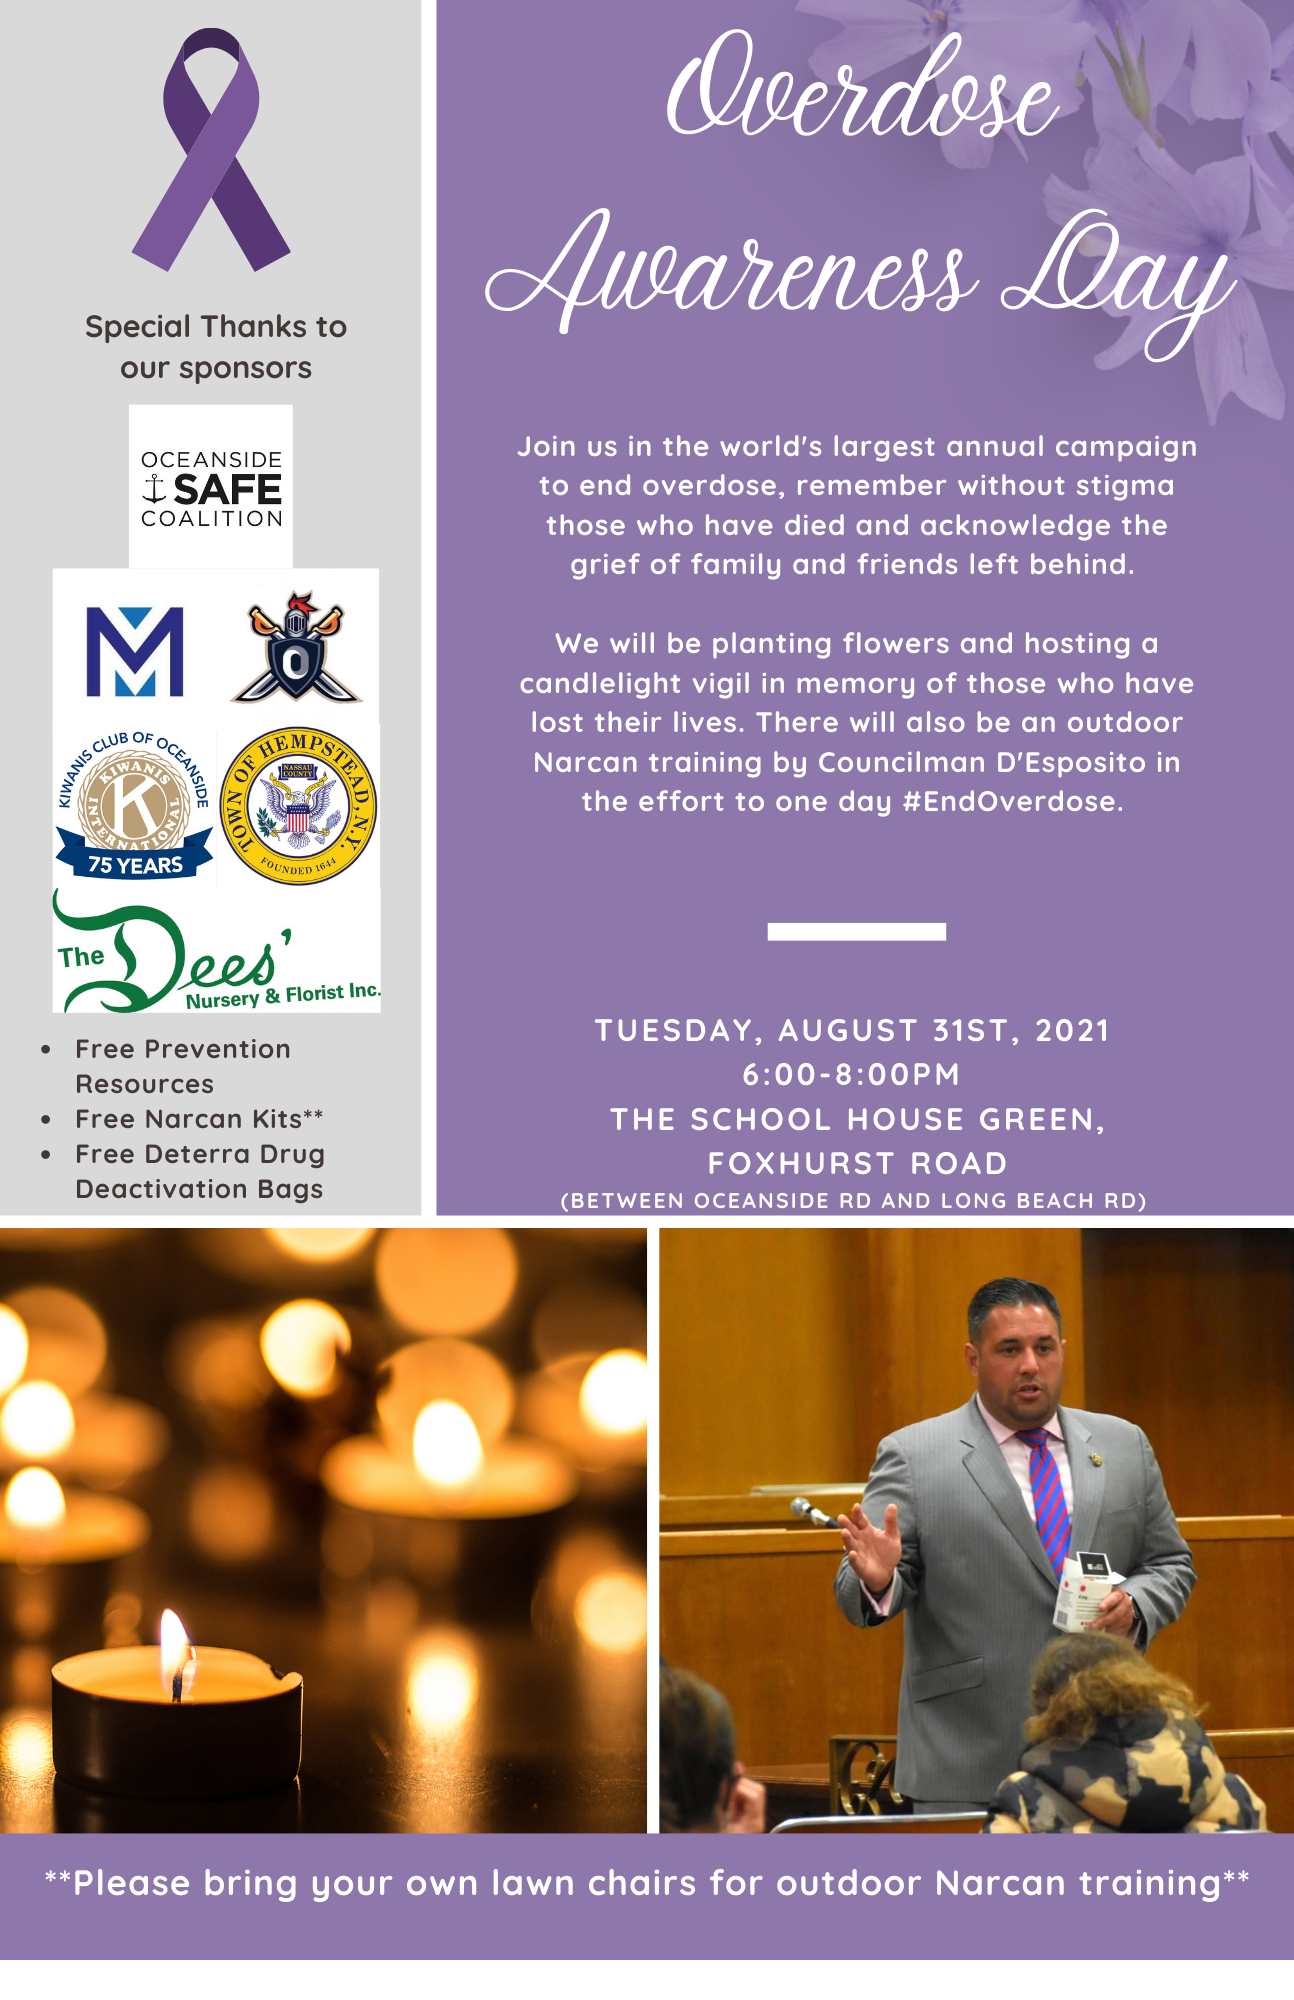 Overdose Awareness Day Remembrance